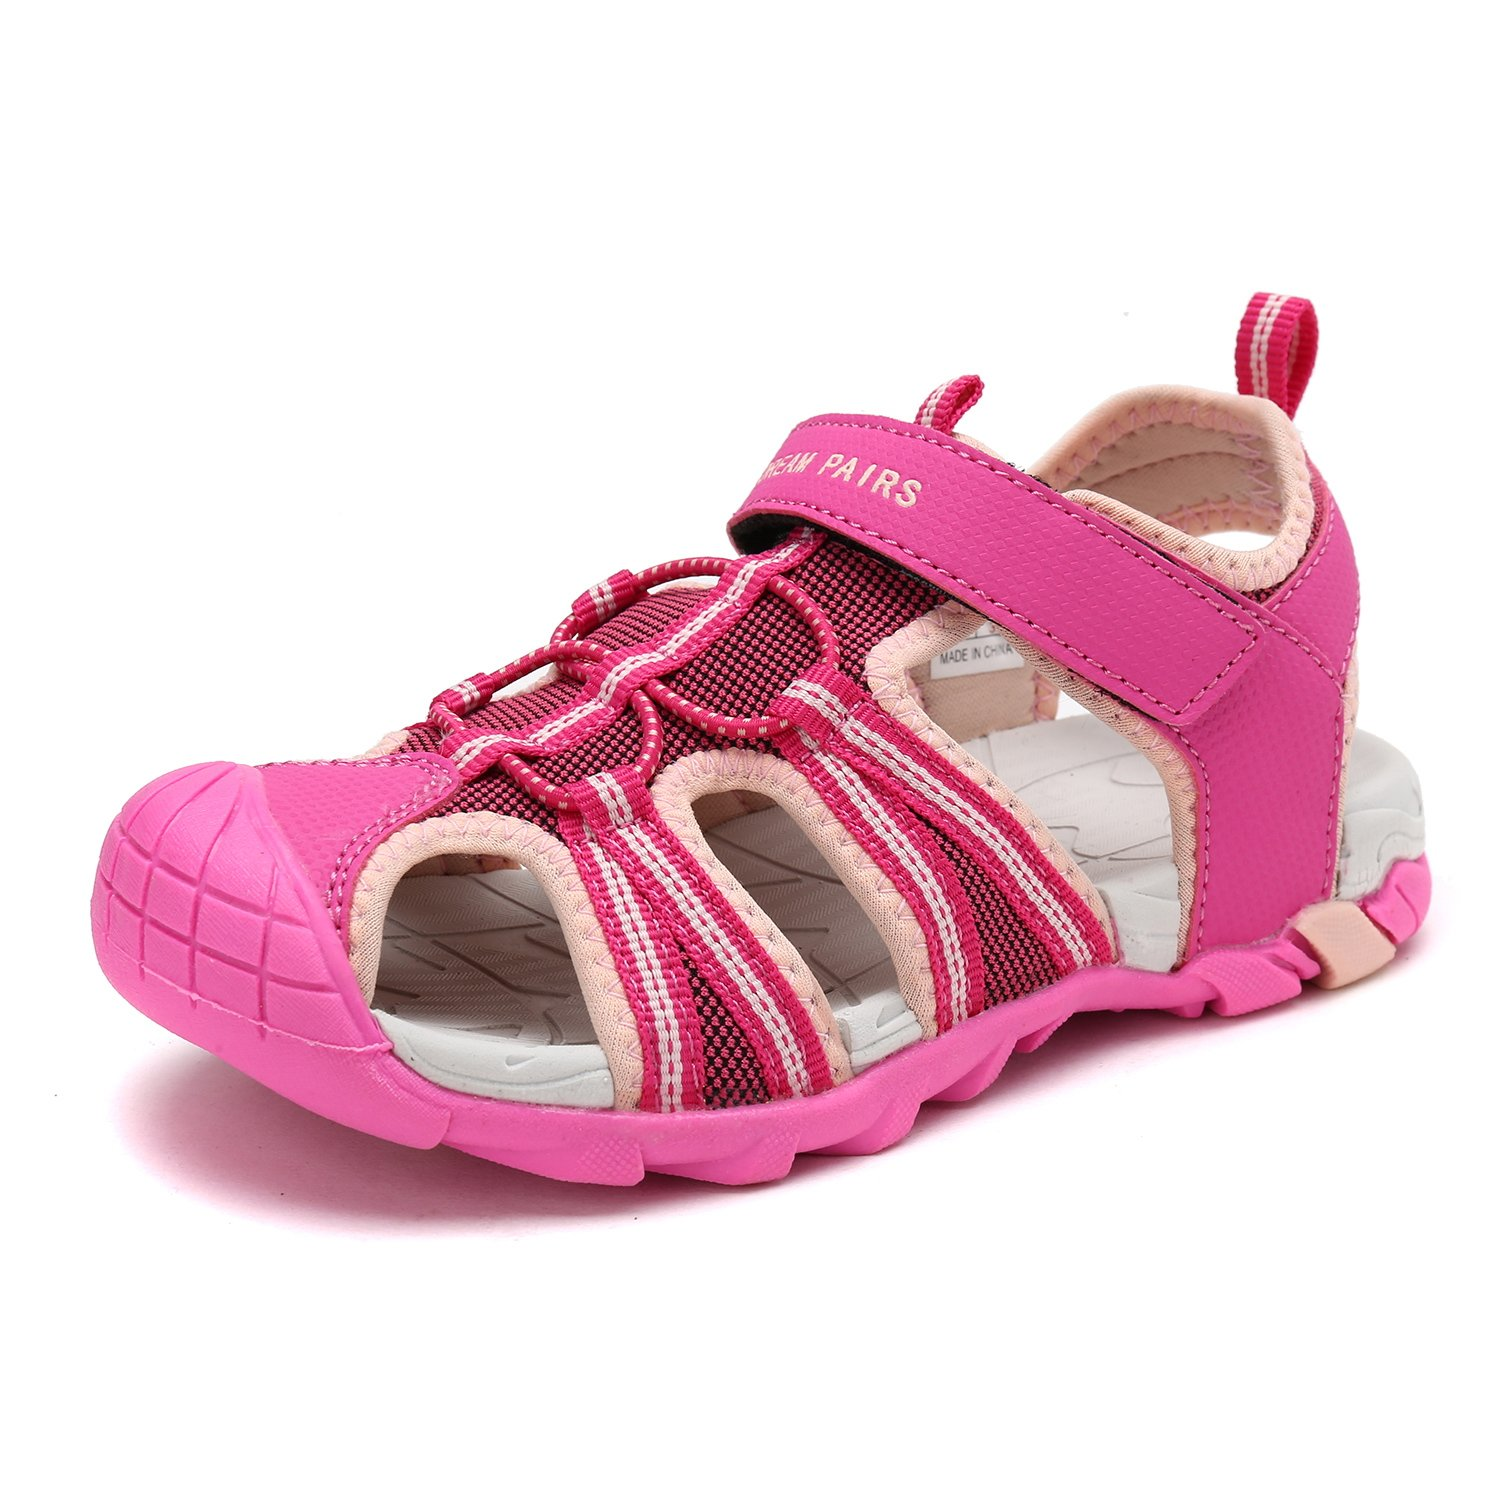 DREAM PAIRS Toddler 170813-K Fuchsia Shell Pink Outdoor Summer Sandals Size 10 M US Toddler